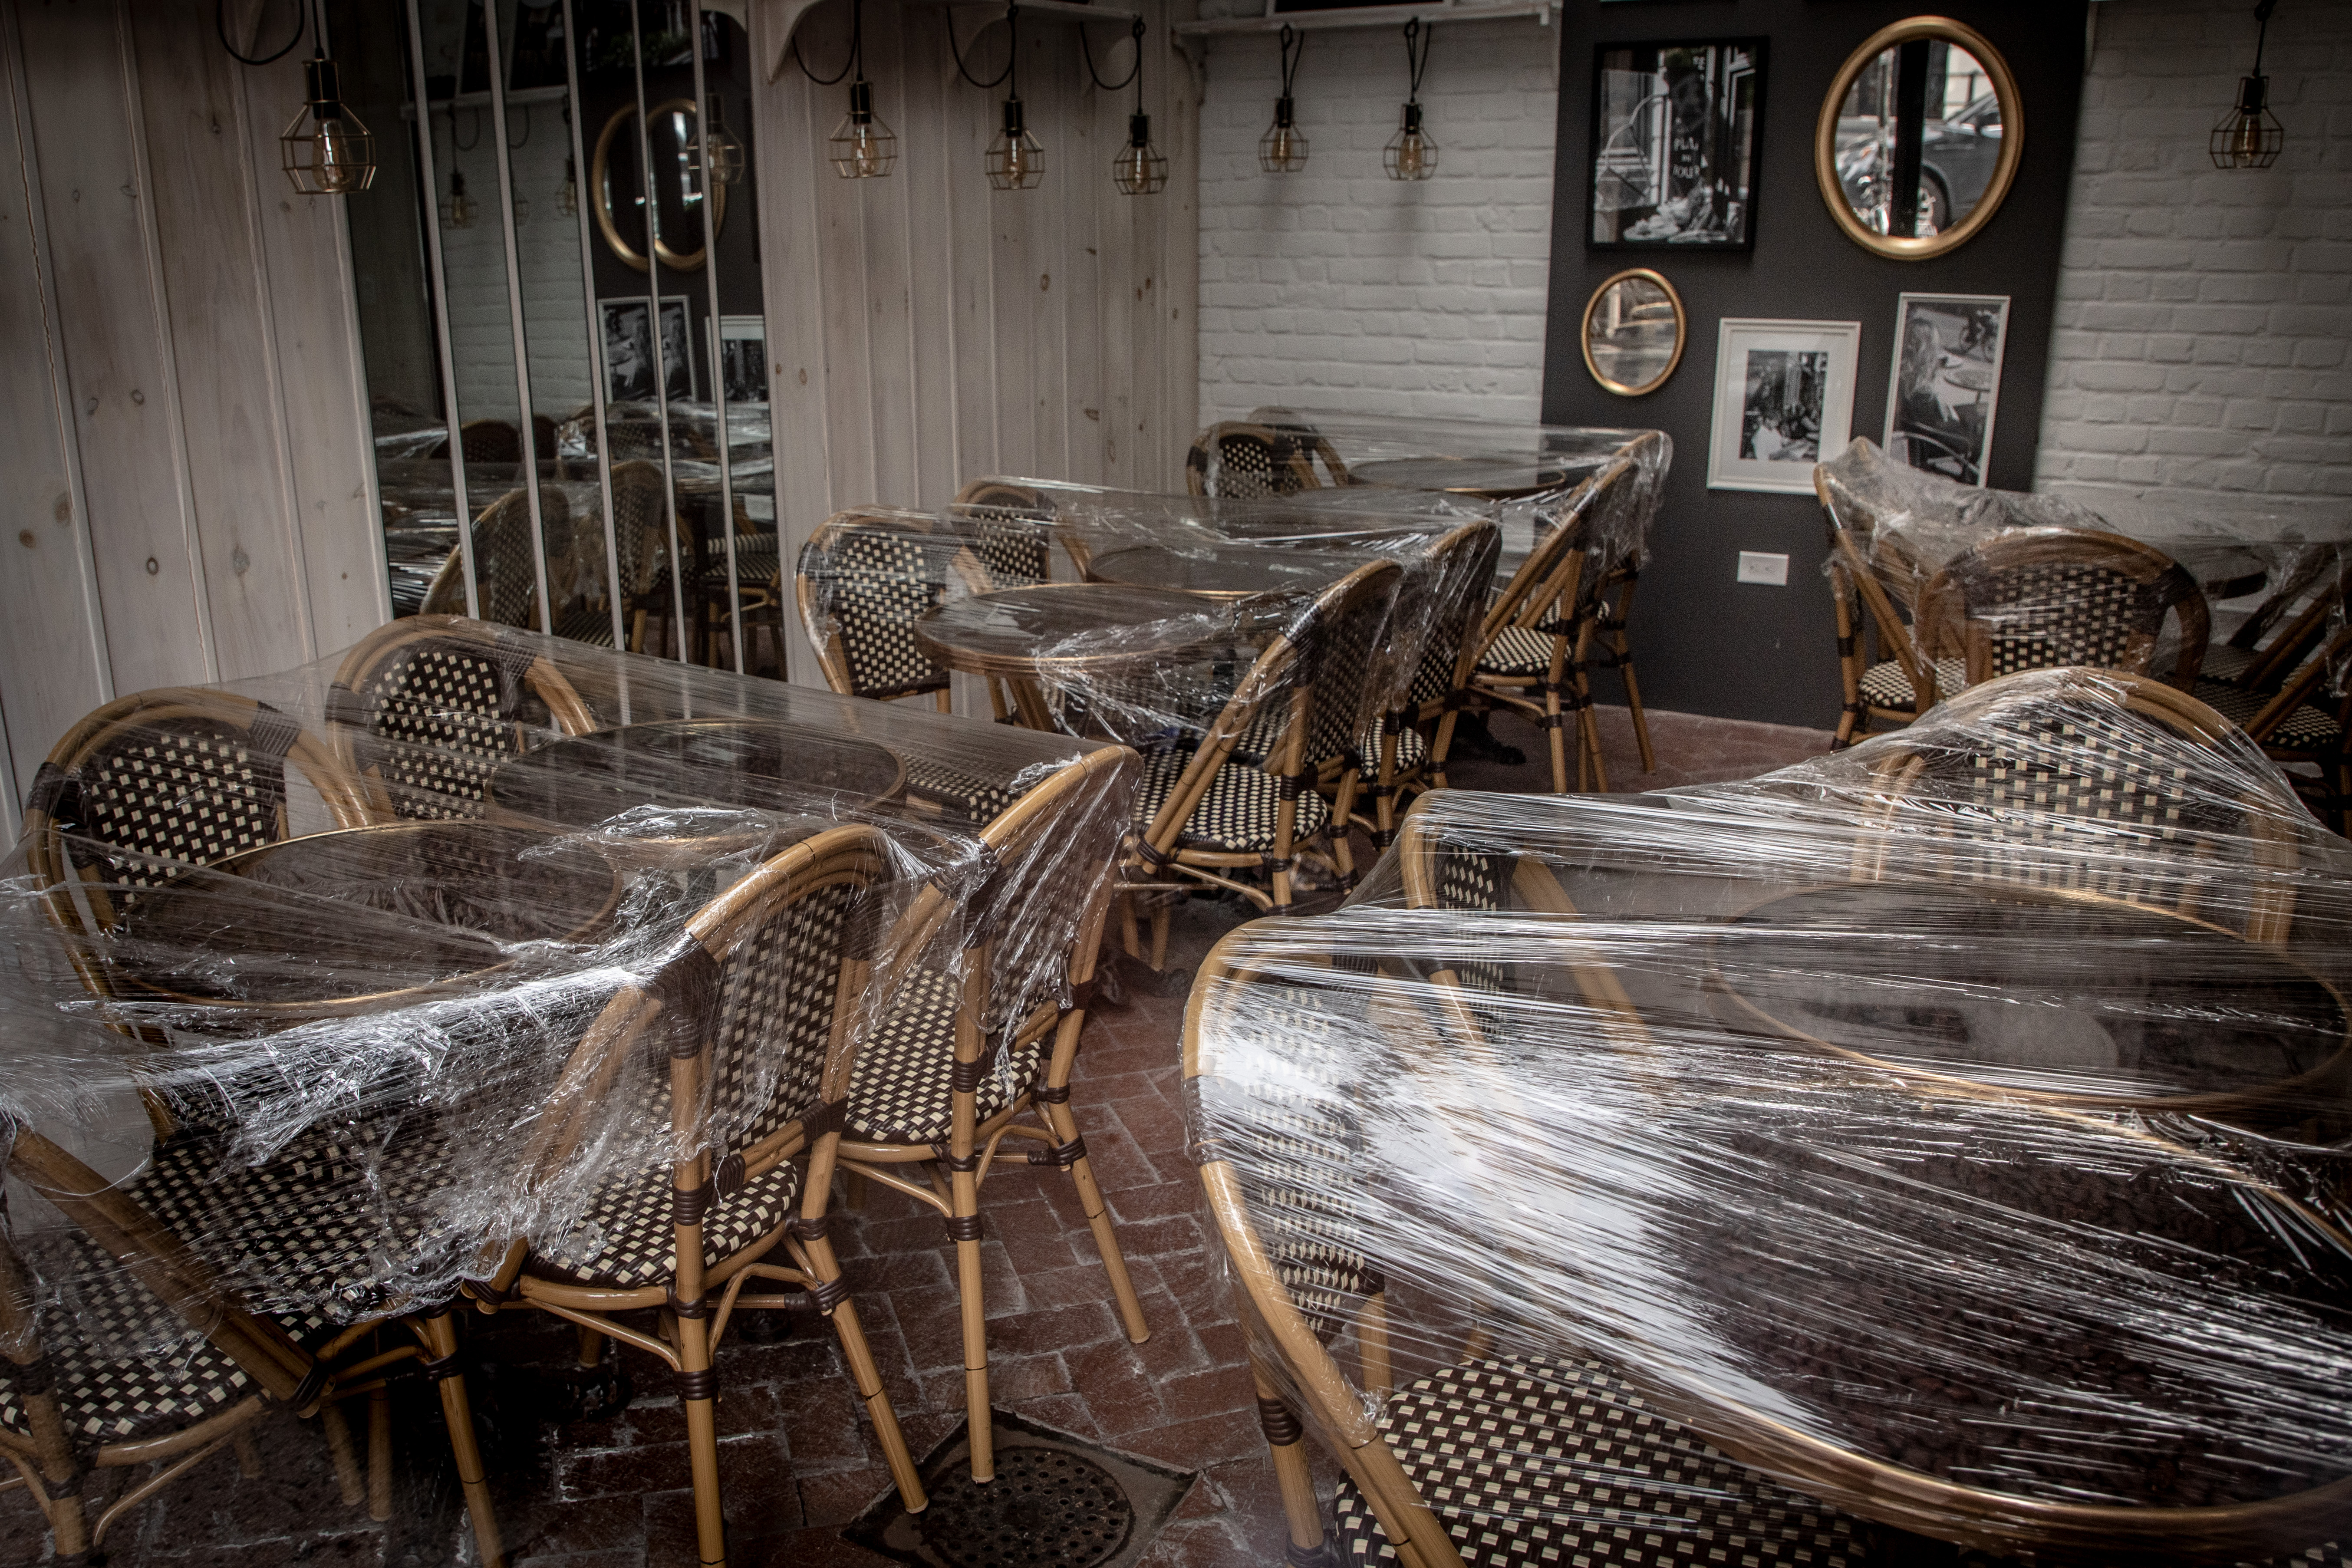 Patio chairs and tables covered in plastic wrap.